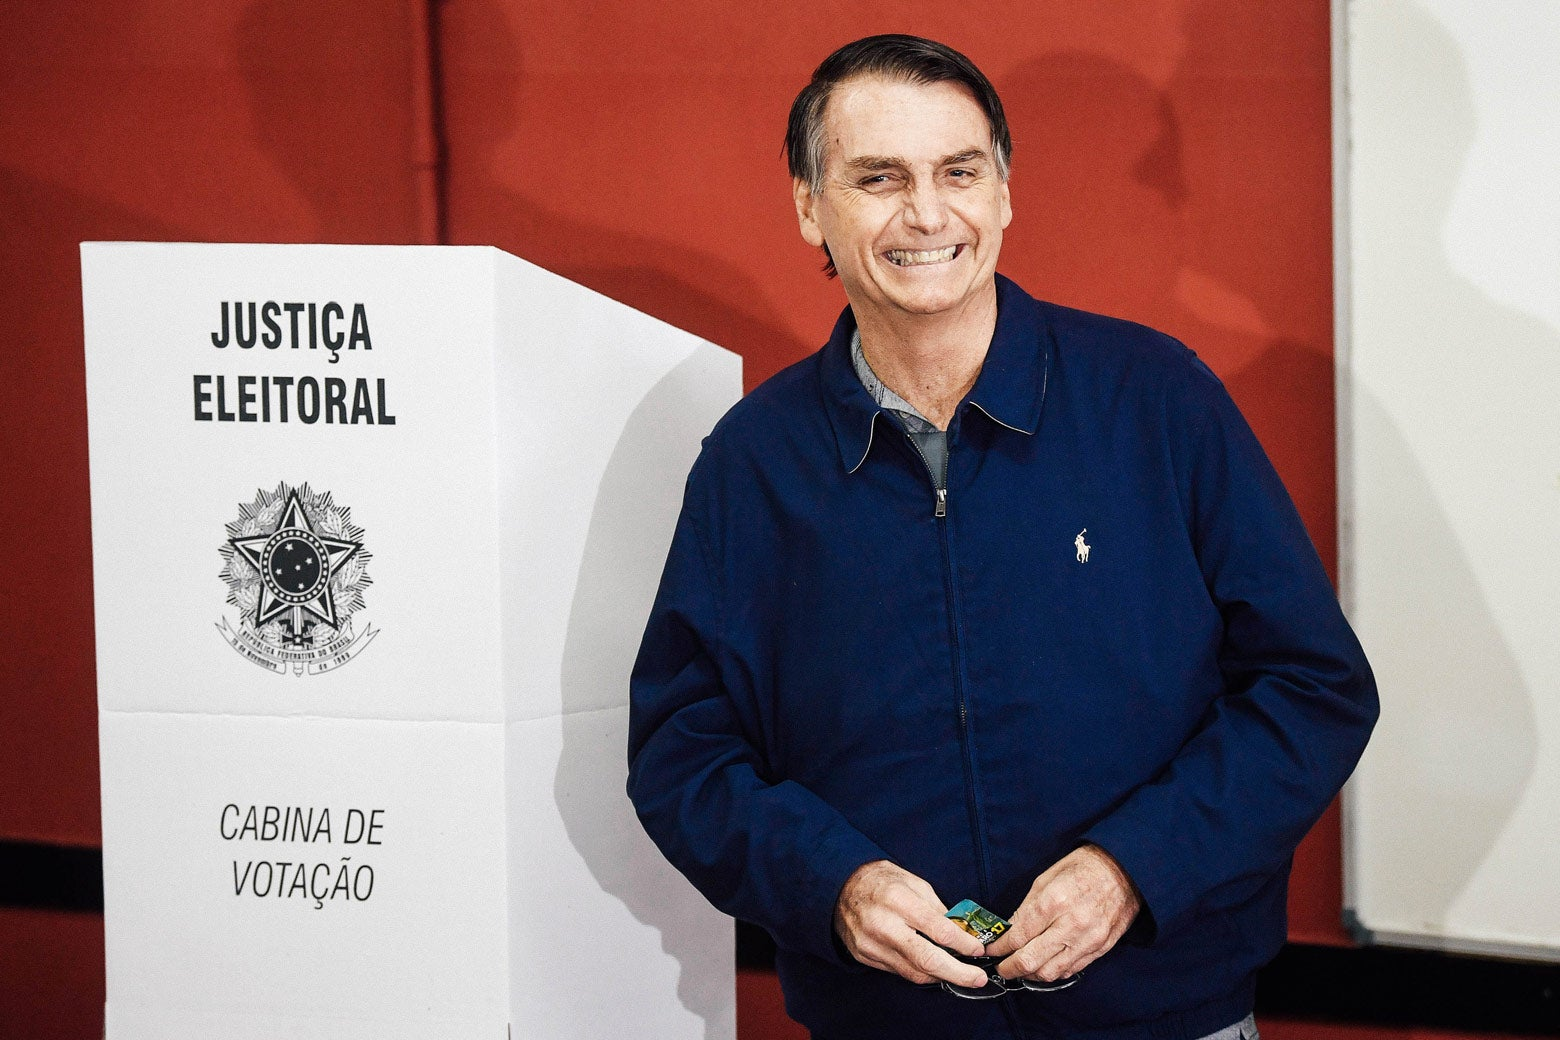 Bolsonaro standing next to a podium, grinning after casting his vote in the general election on Oct. 7.